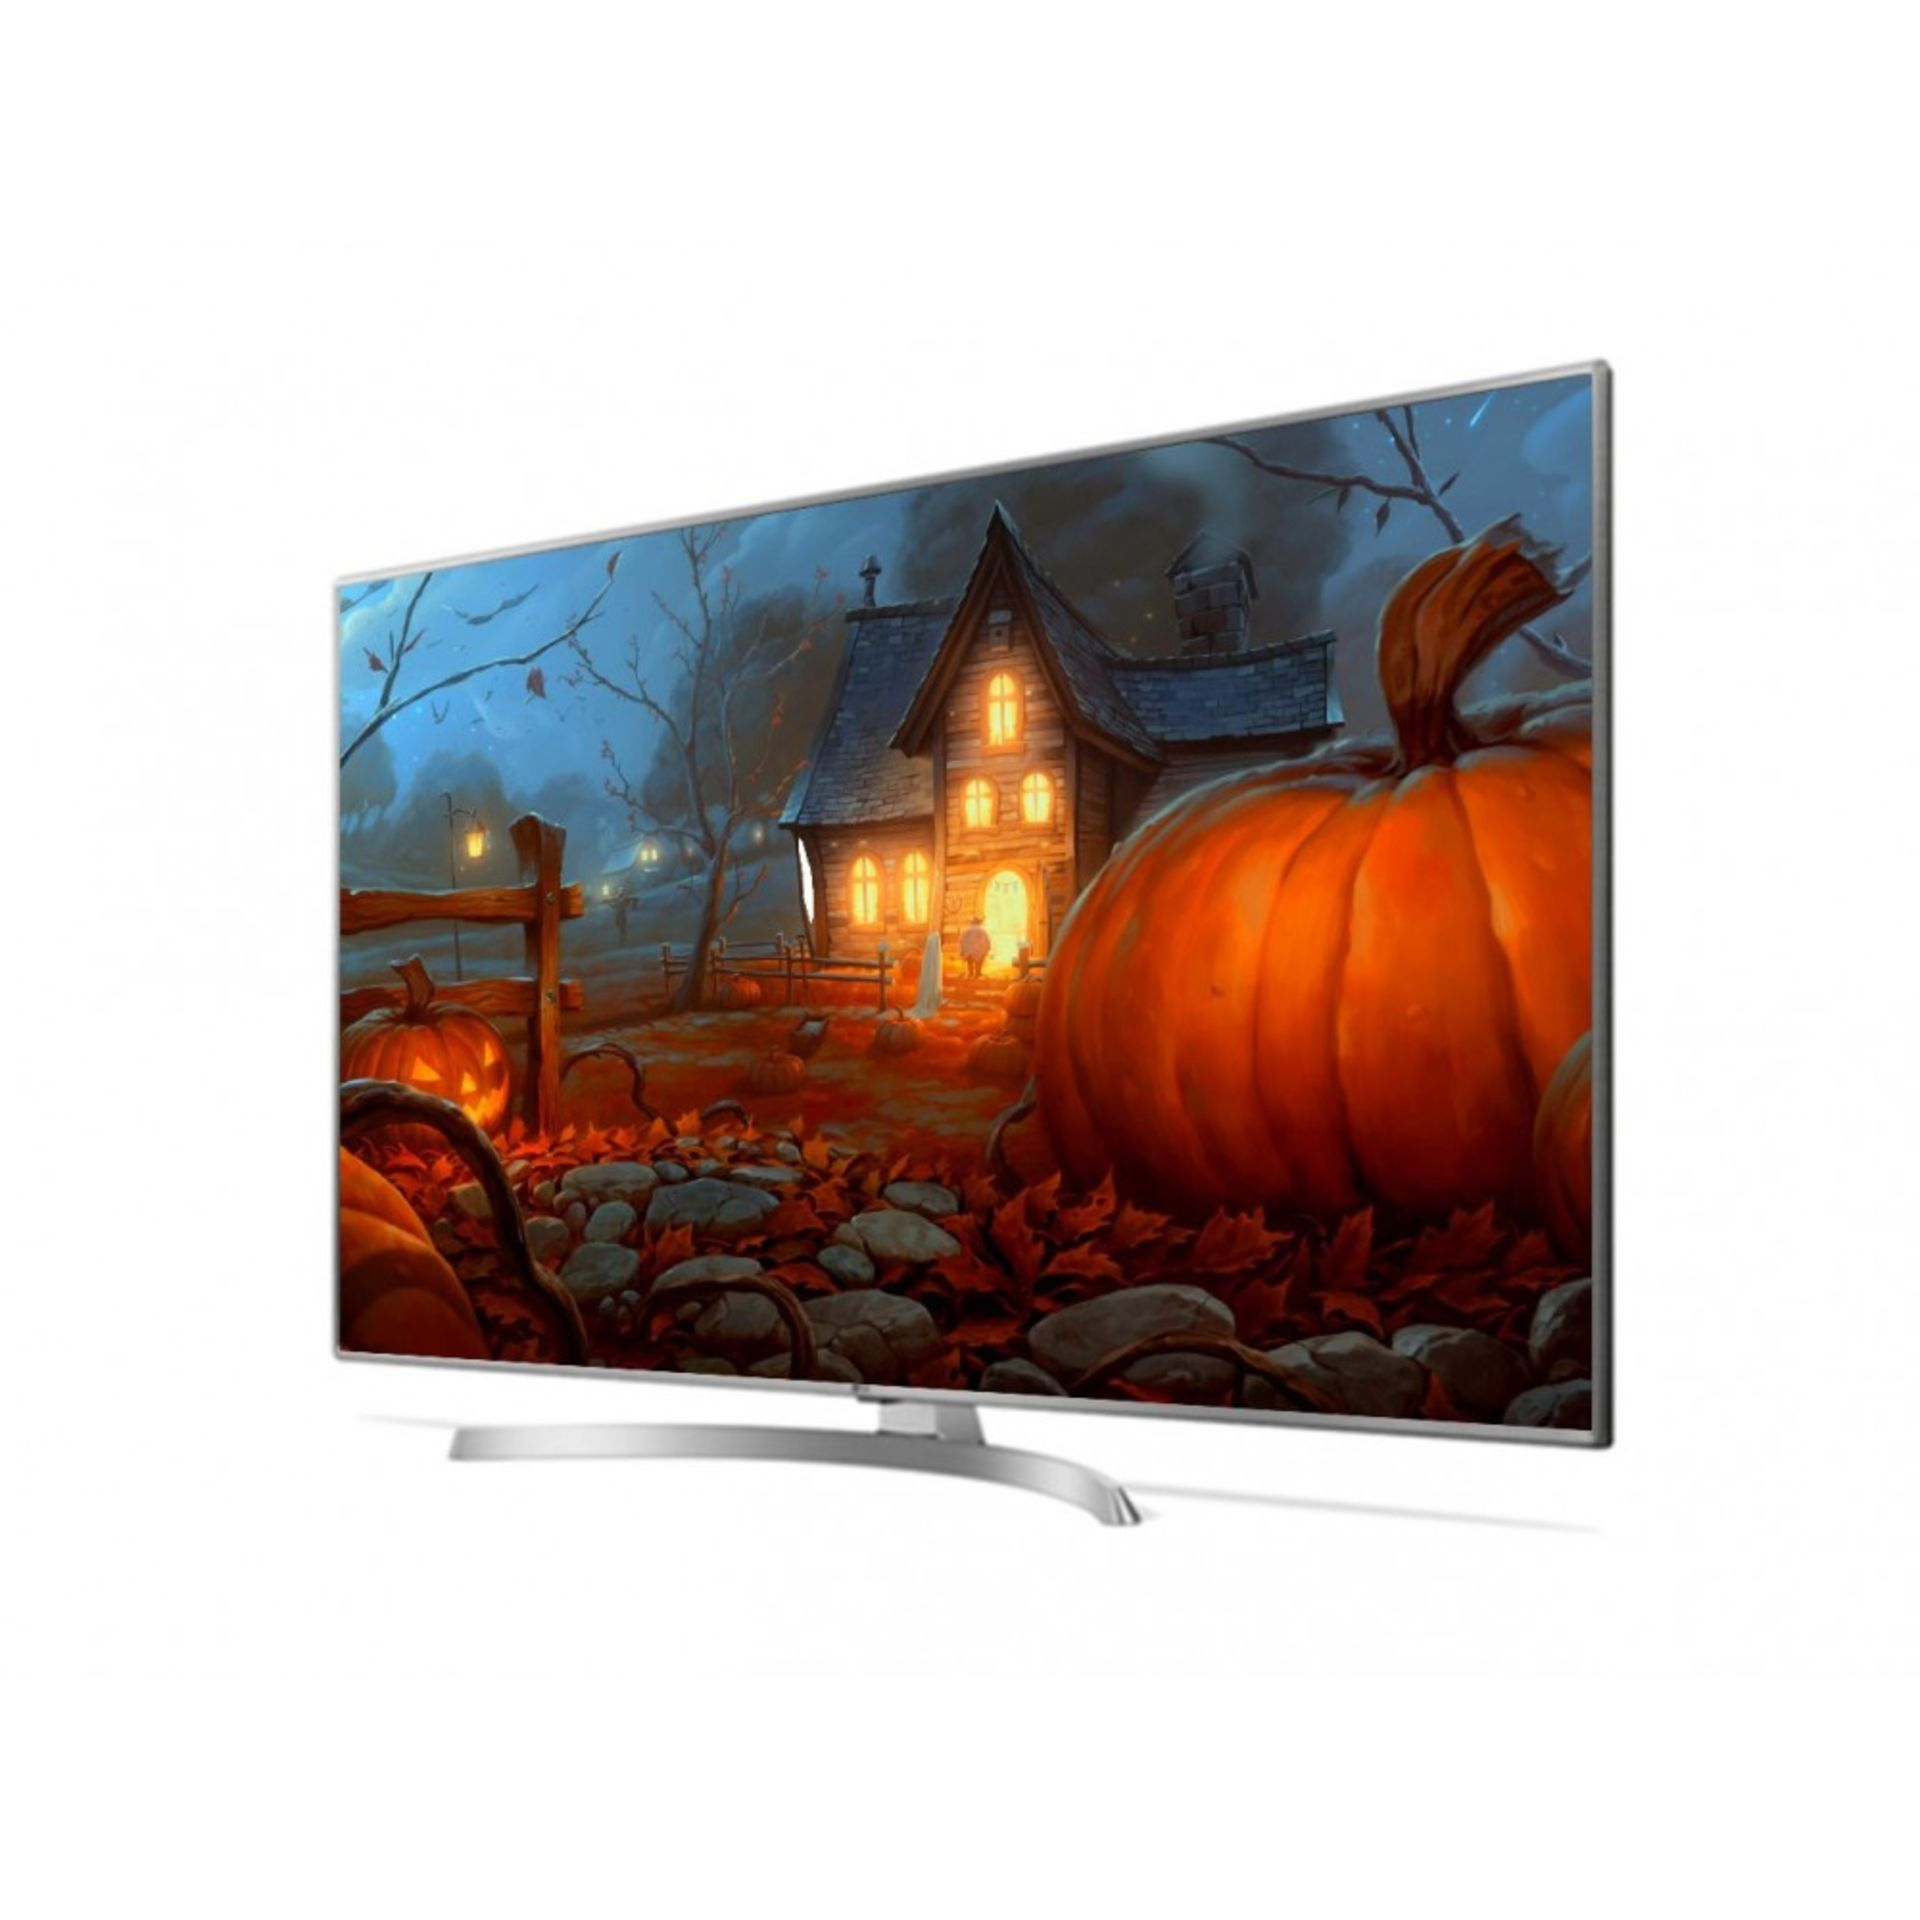 Lot 16012 - V Grade A LG 49 Inch ACTIVE HDR 4K ULTRA HD NANO LED SMART TV WITH FREEVIEW HD & WEBOS 4.0 &